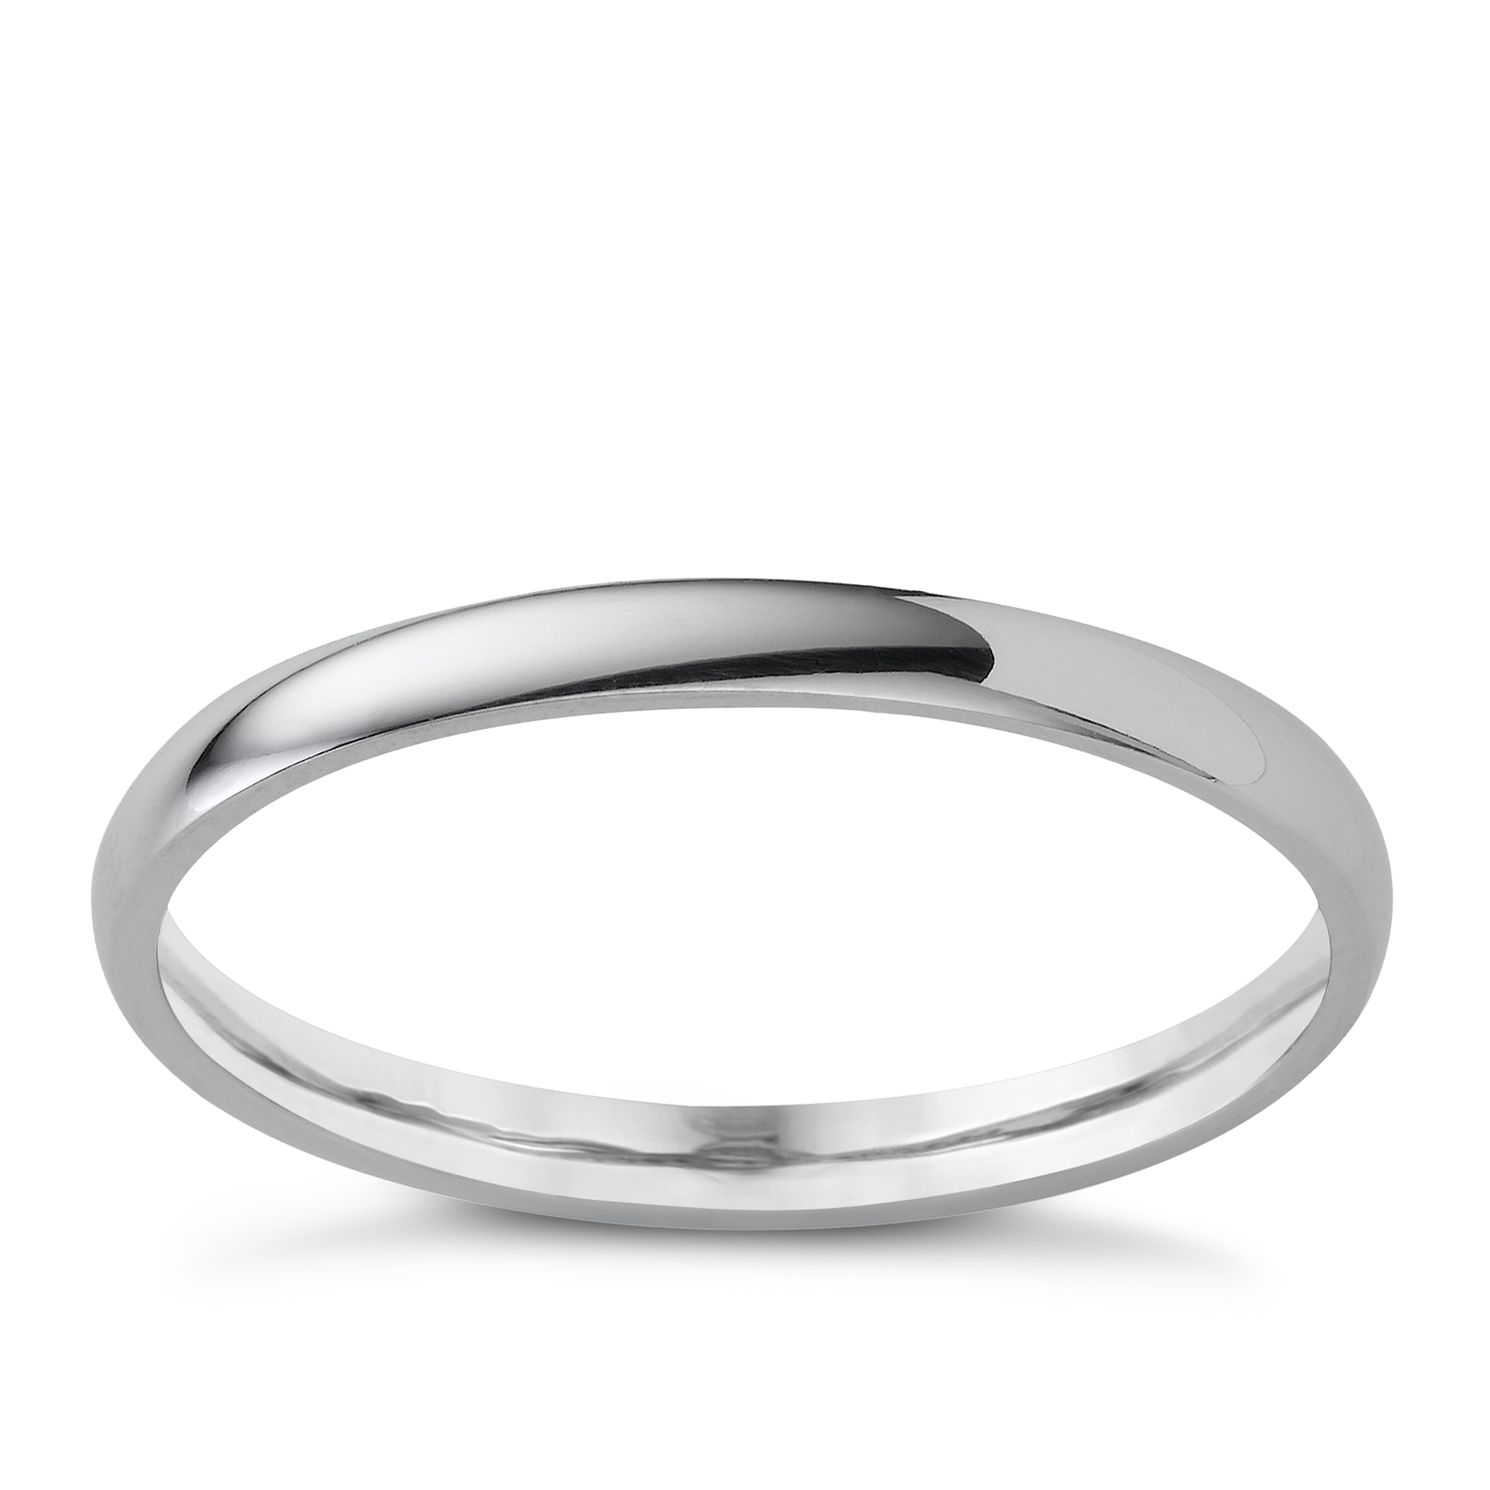 hematite for jewelry steel double rings band item magnetic in wedding ring fashion from health circle rainso mens women stainless